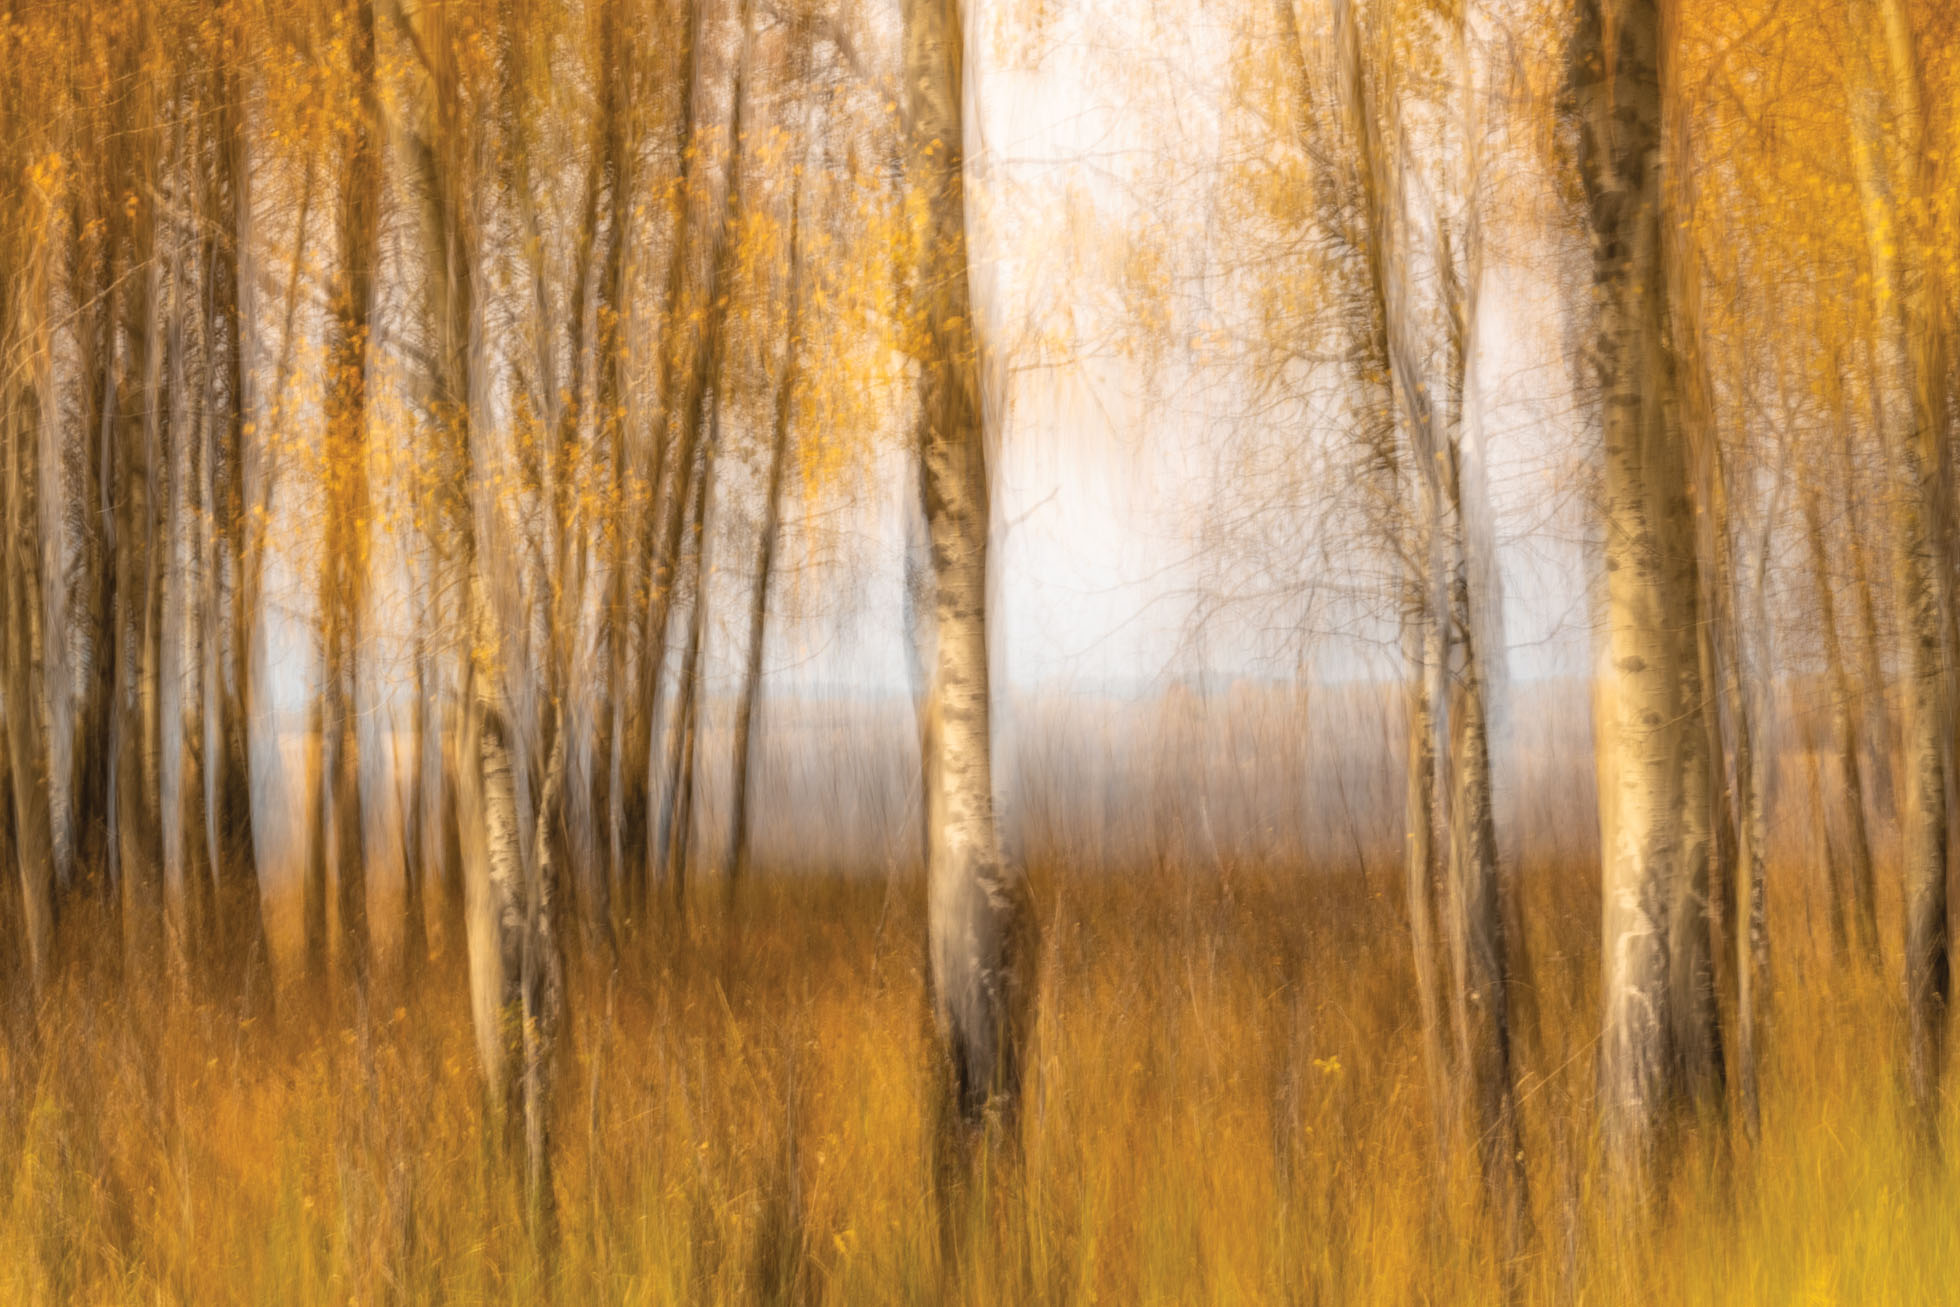 During the Magic in the Tetons we spent a couple hours shooting the autumn colors of the gorgeous trees. This shot is the result of vertical panning for 1 second.